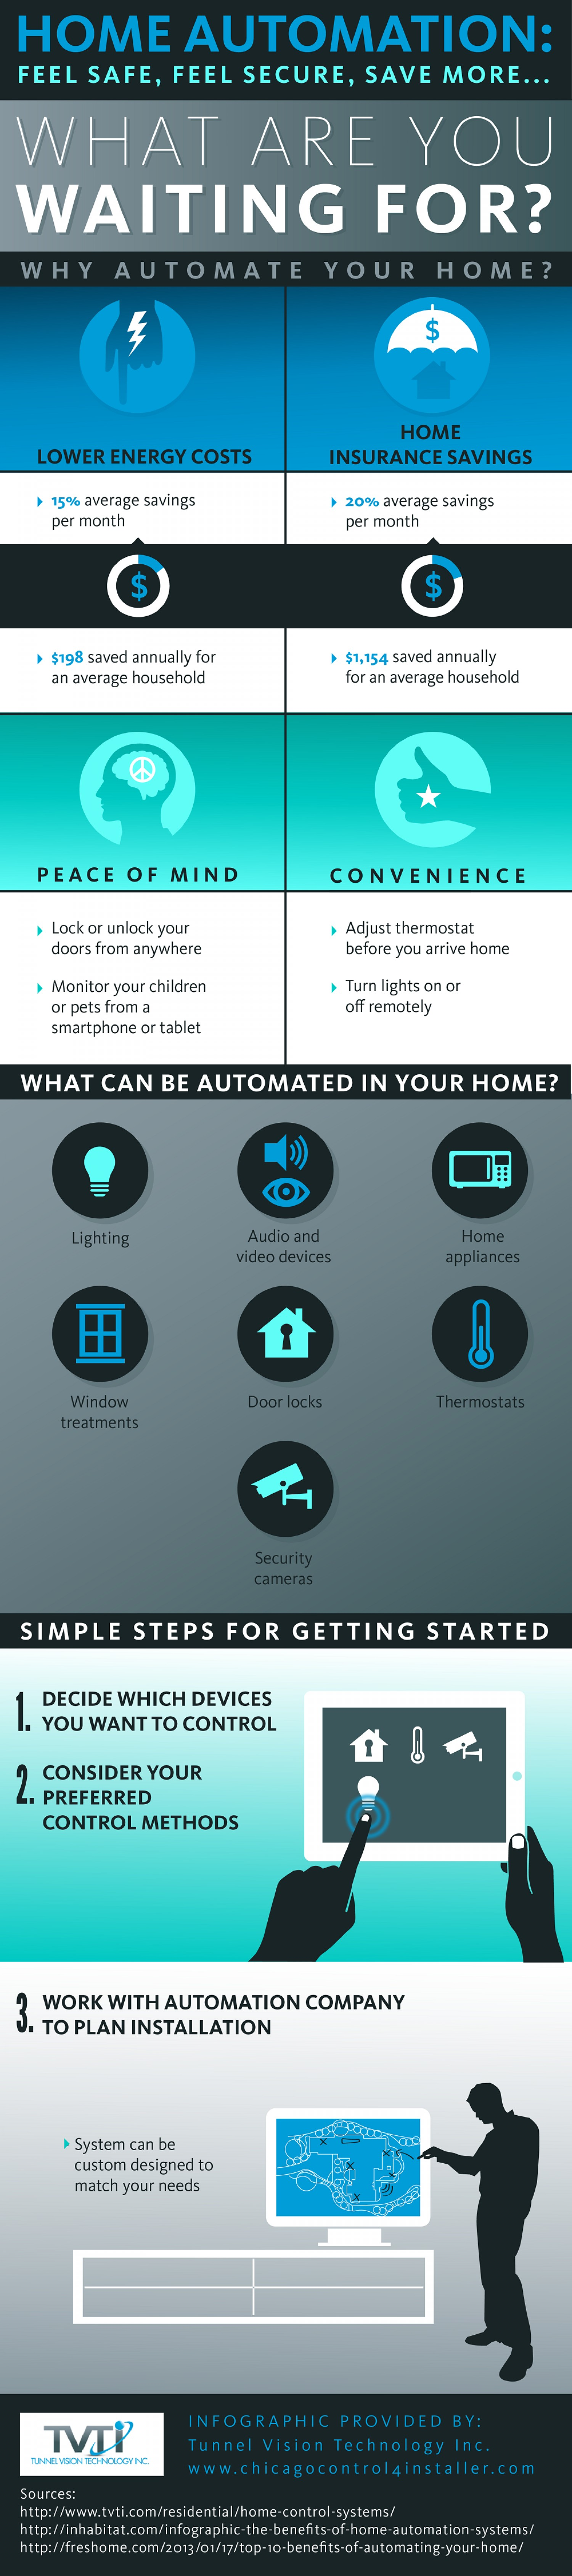 home-automation-fell-safe-feel-secure